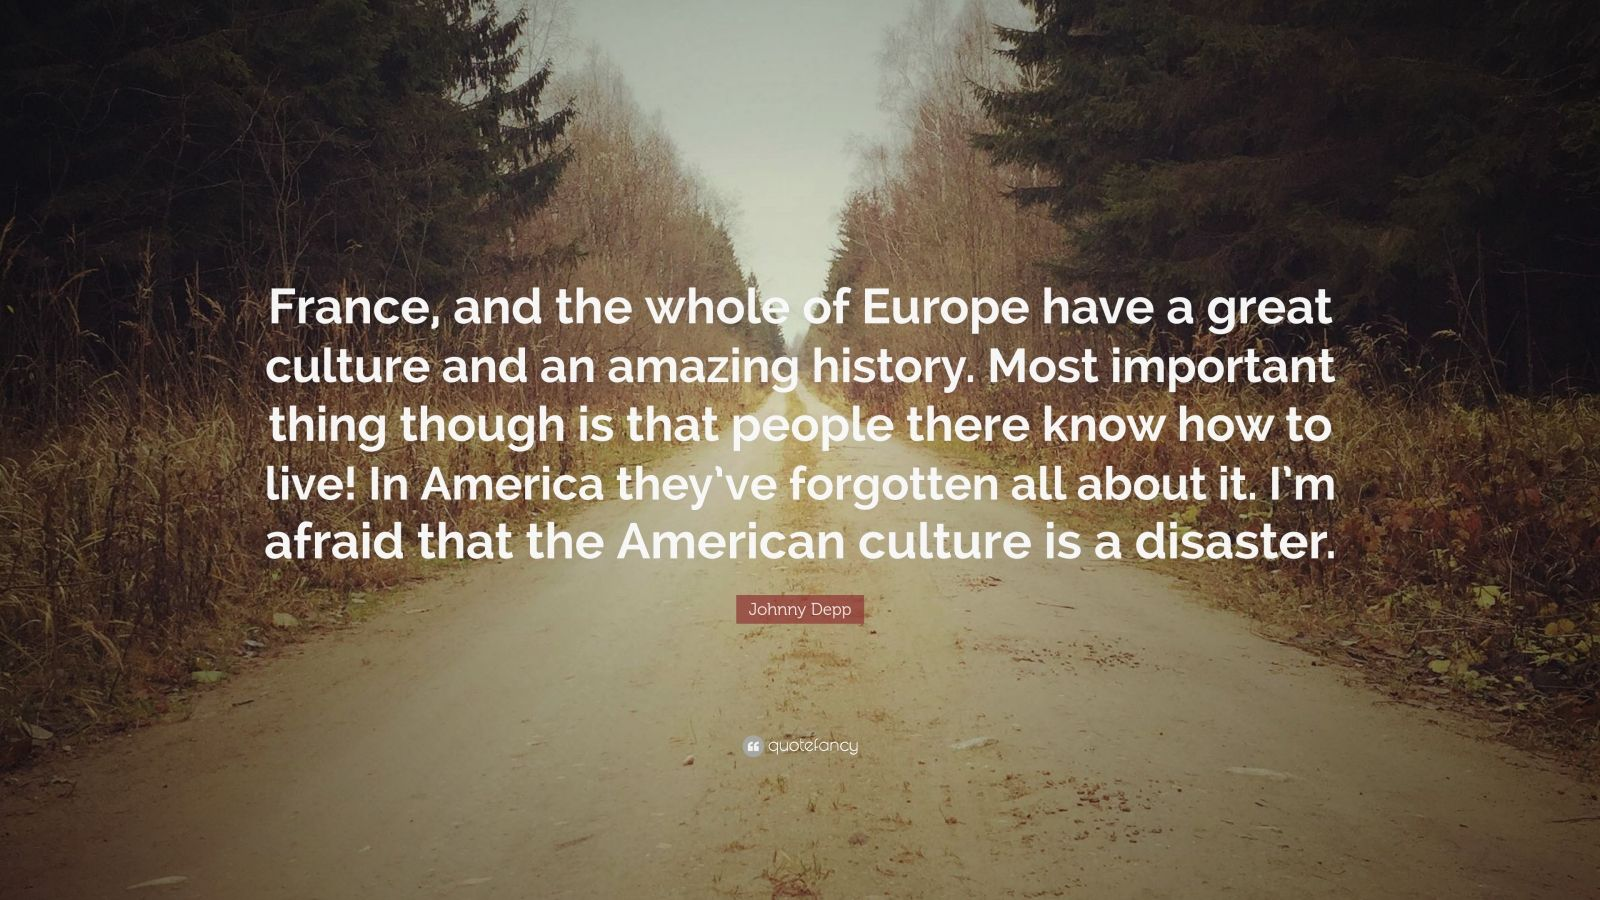 """Johnny Depp Quote: """"France, and the whole of Europe have a great culture and an amazing history. Most important thing though is that people there know how to live! In America they've forgotten all about it. I'm afraid that the American culture is a disaster."""""""